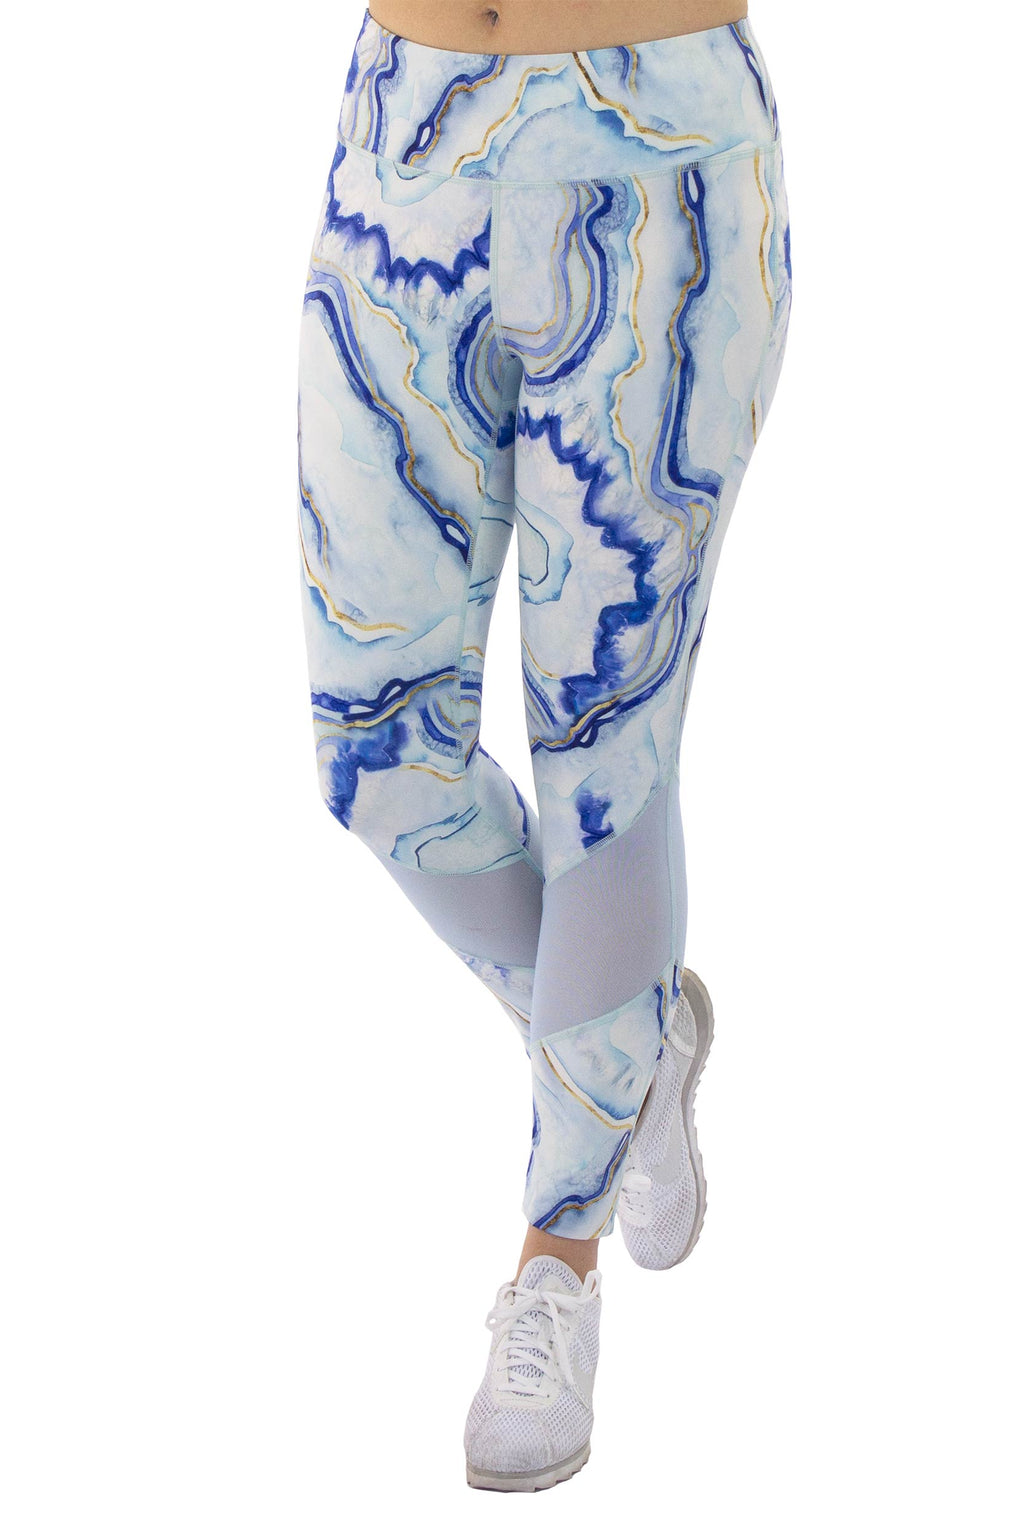 Geode Women's Full Leggings L-7002-GEODE